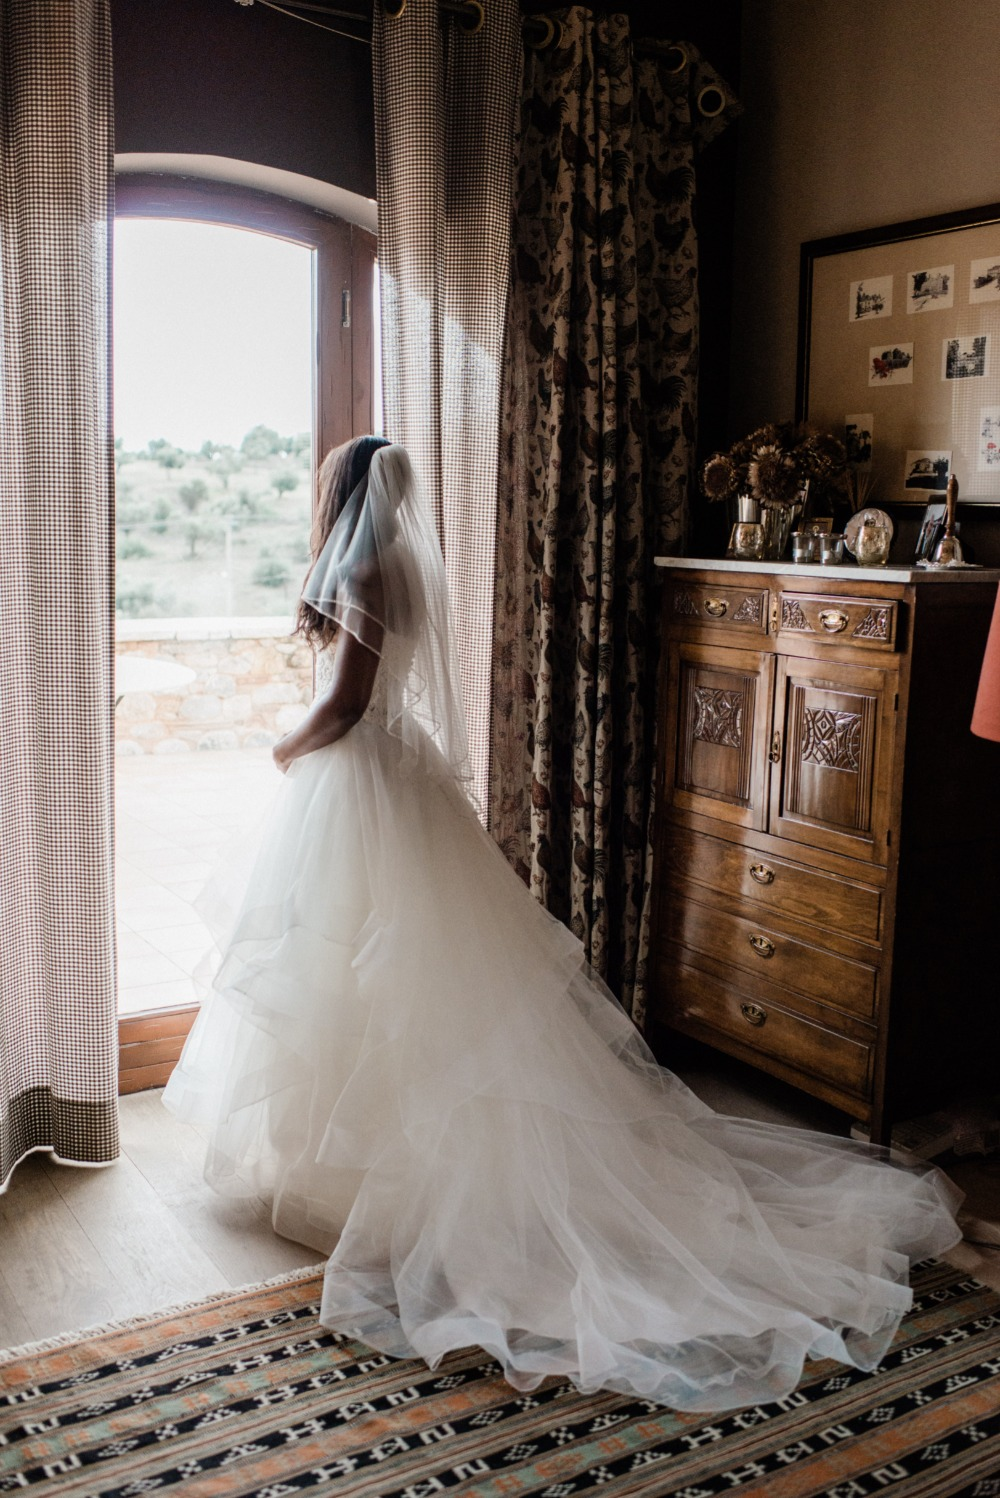 Brenae and Ryan's Romantic Destination Wedding in Greece gallery image 3